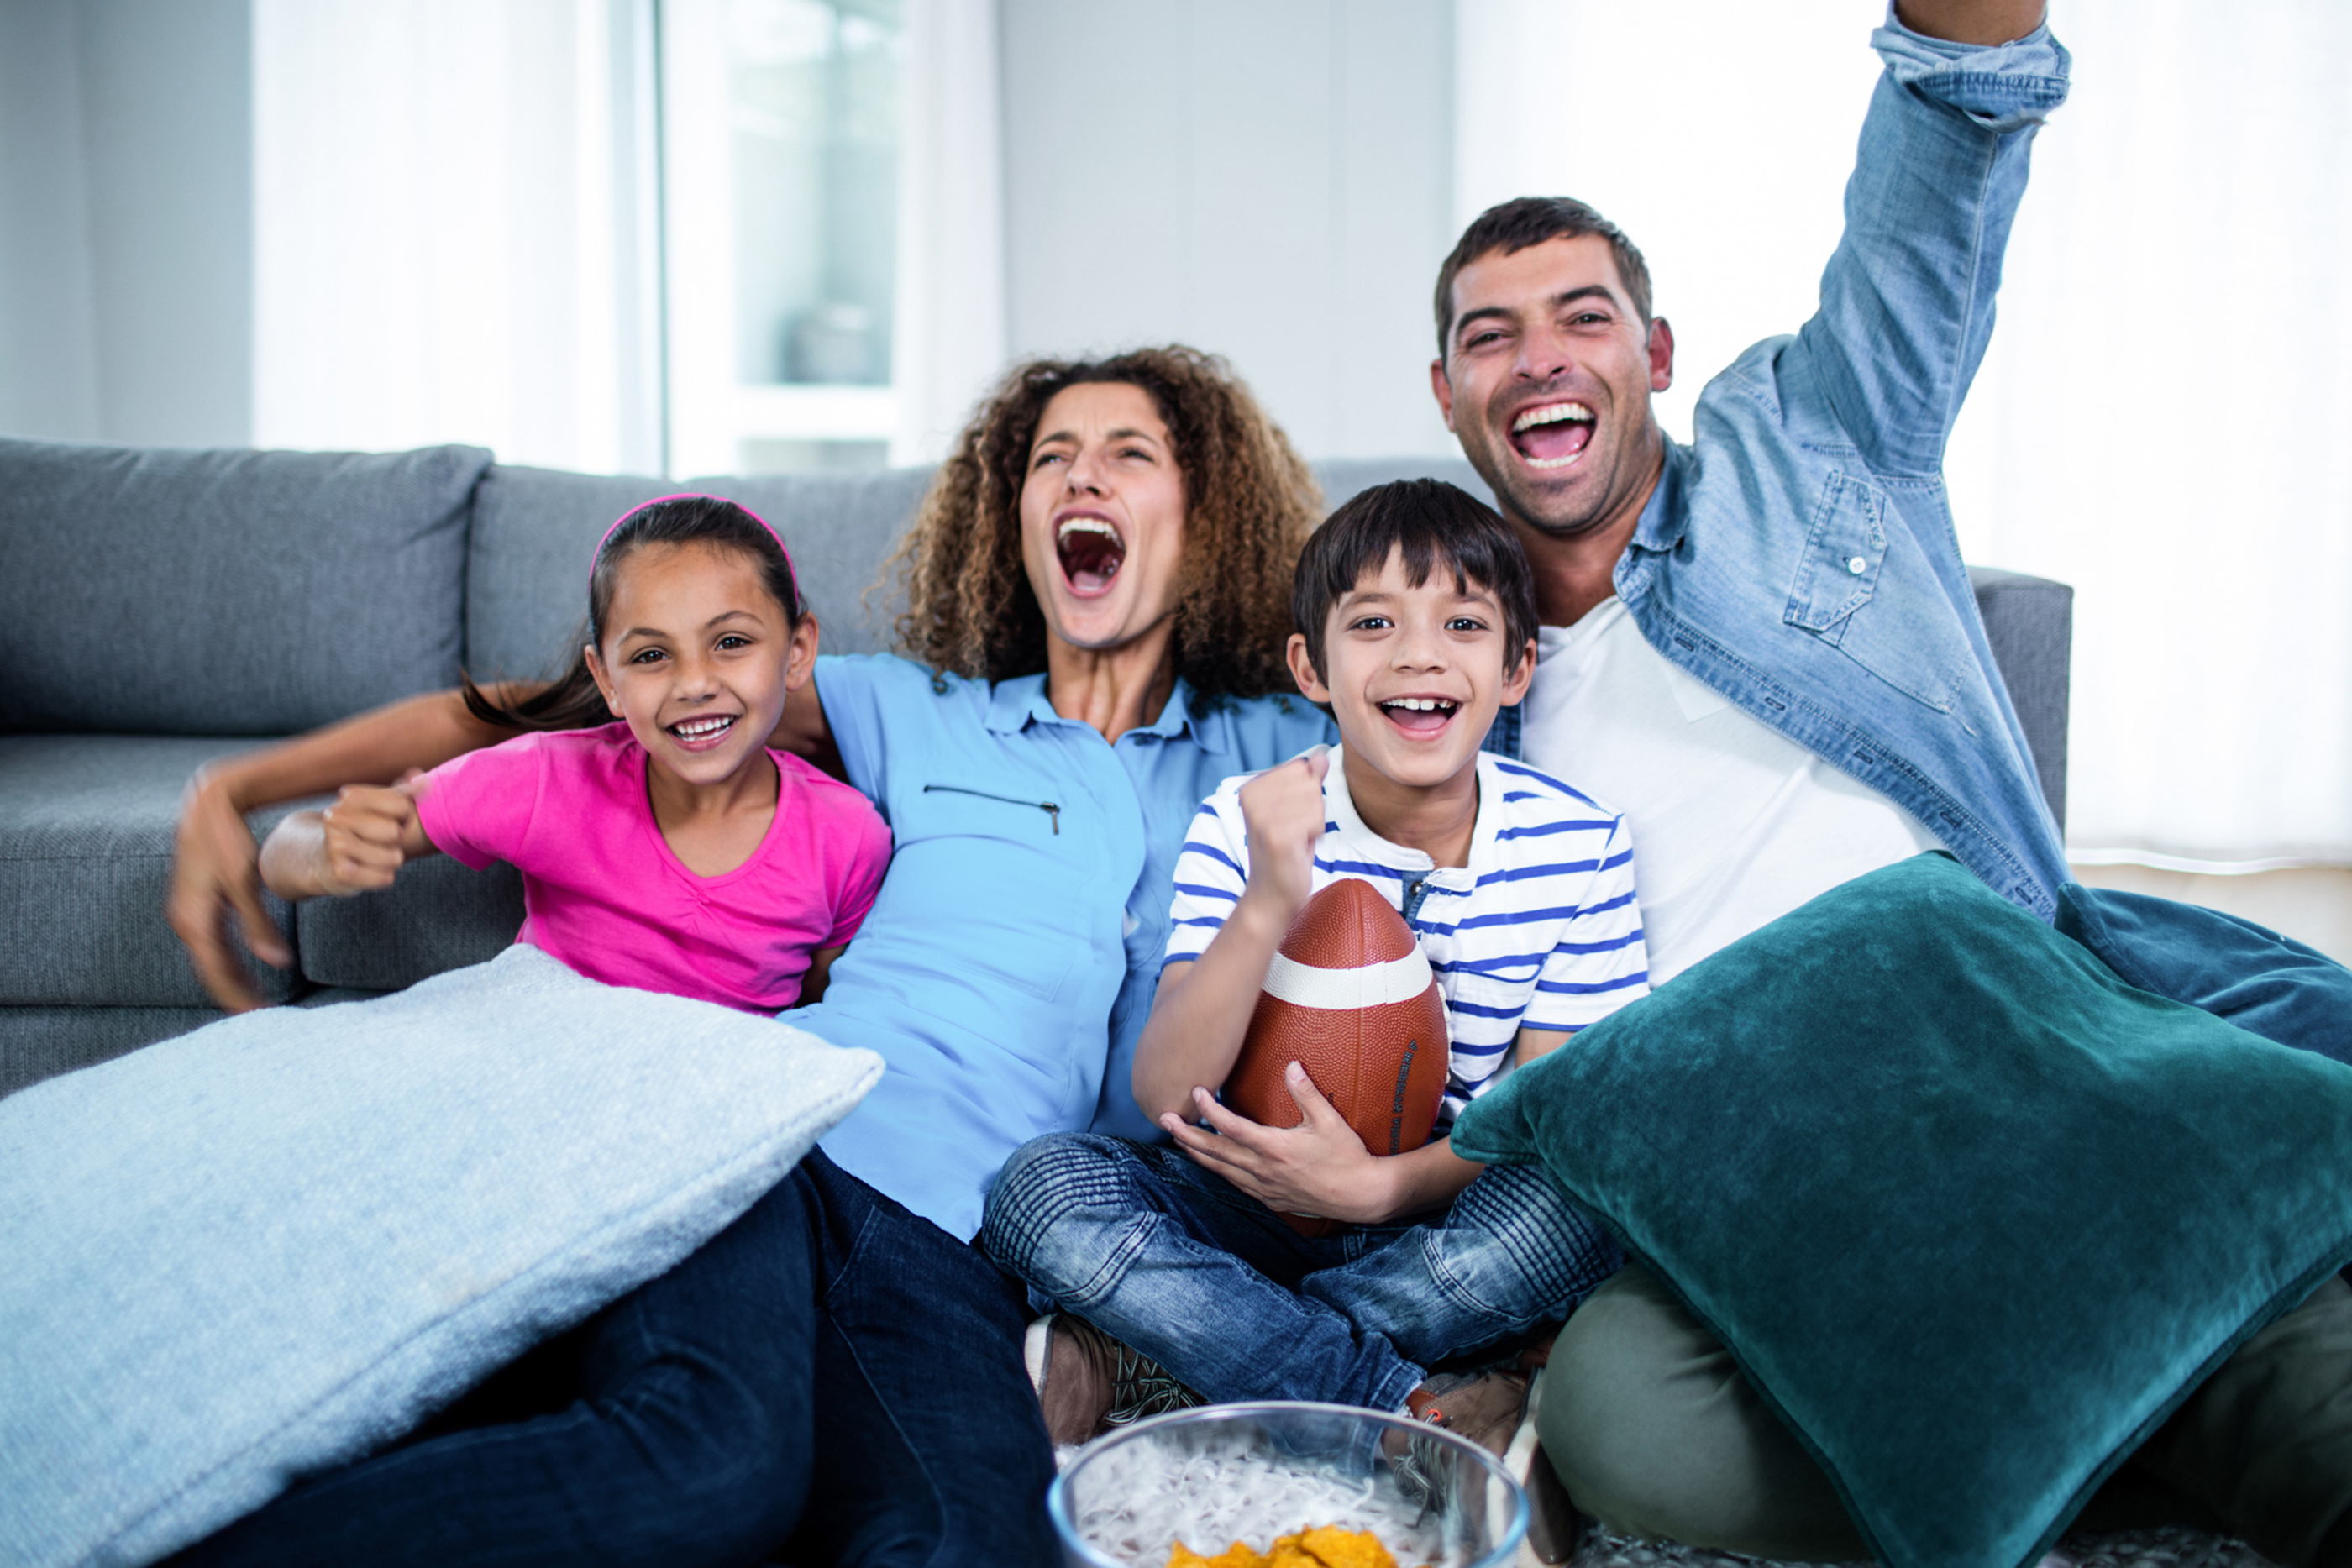 family watching sports on tv and cheering